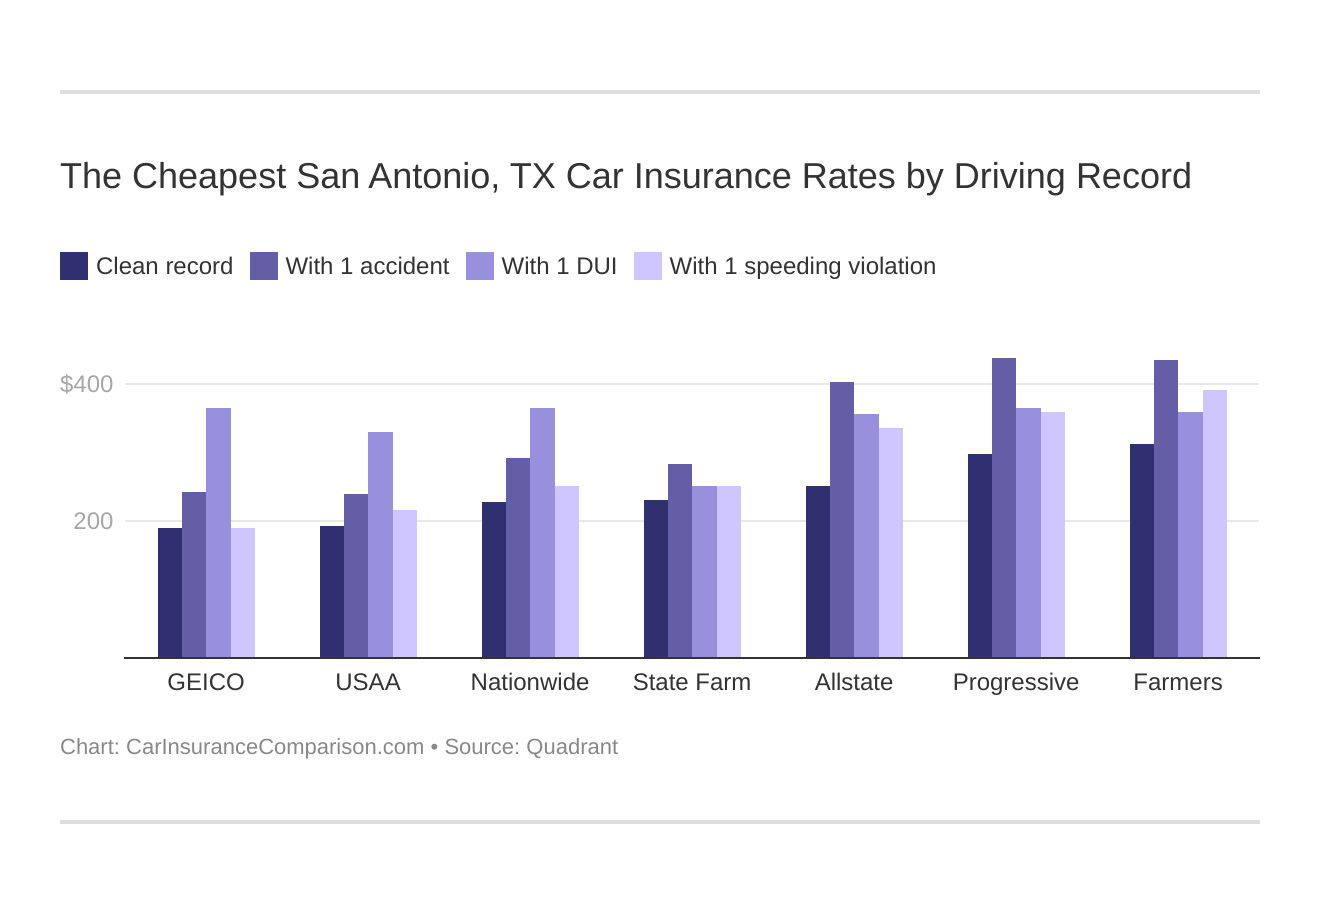 The Cheapest San Antonio, TX Car Insurance Rates by Driving Record